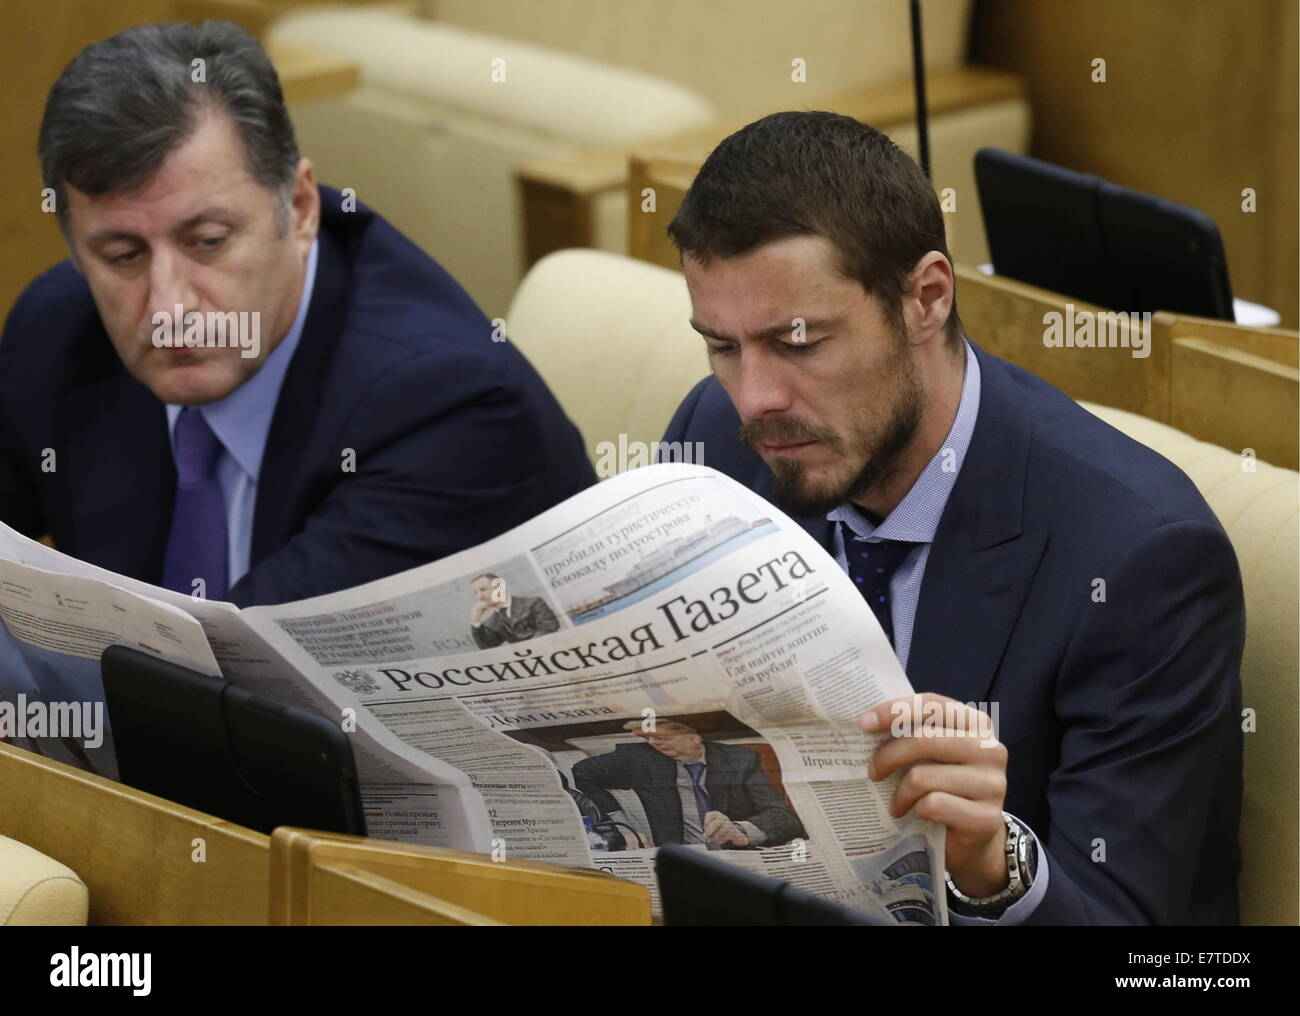 Moscow Russia 23rd Sep 2014 State Duma member Marat Safin R